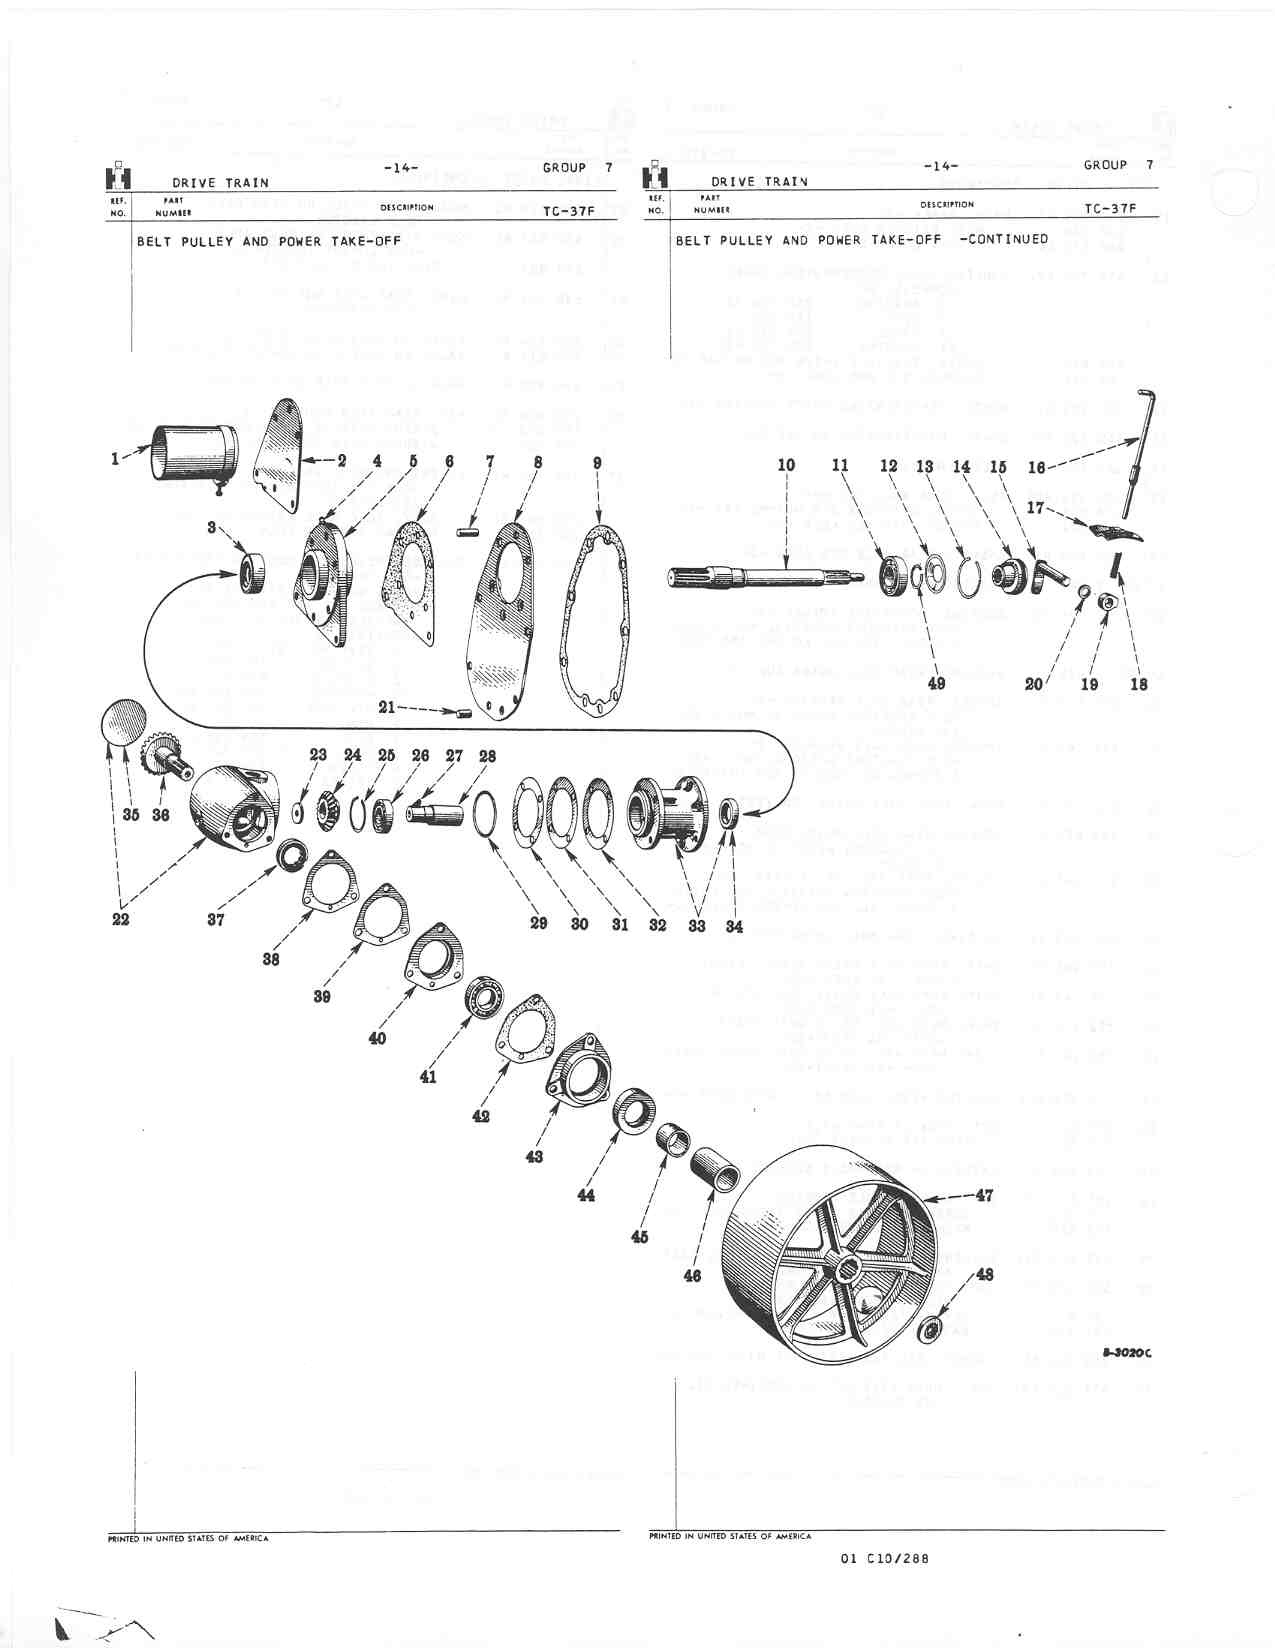 Farmall 140 12 Volt Wiring Diagram | Wiring Liry on